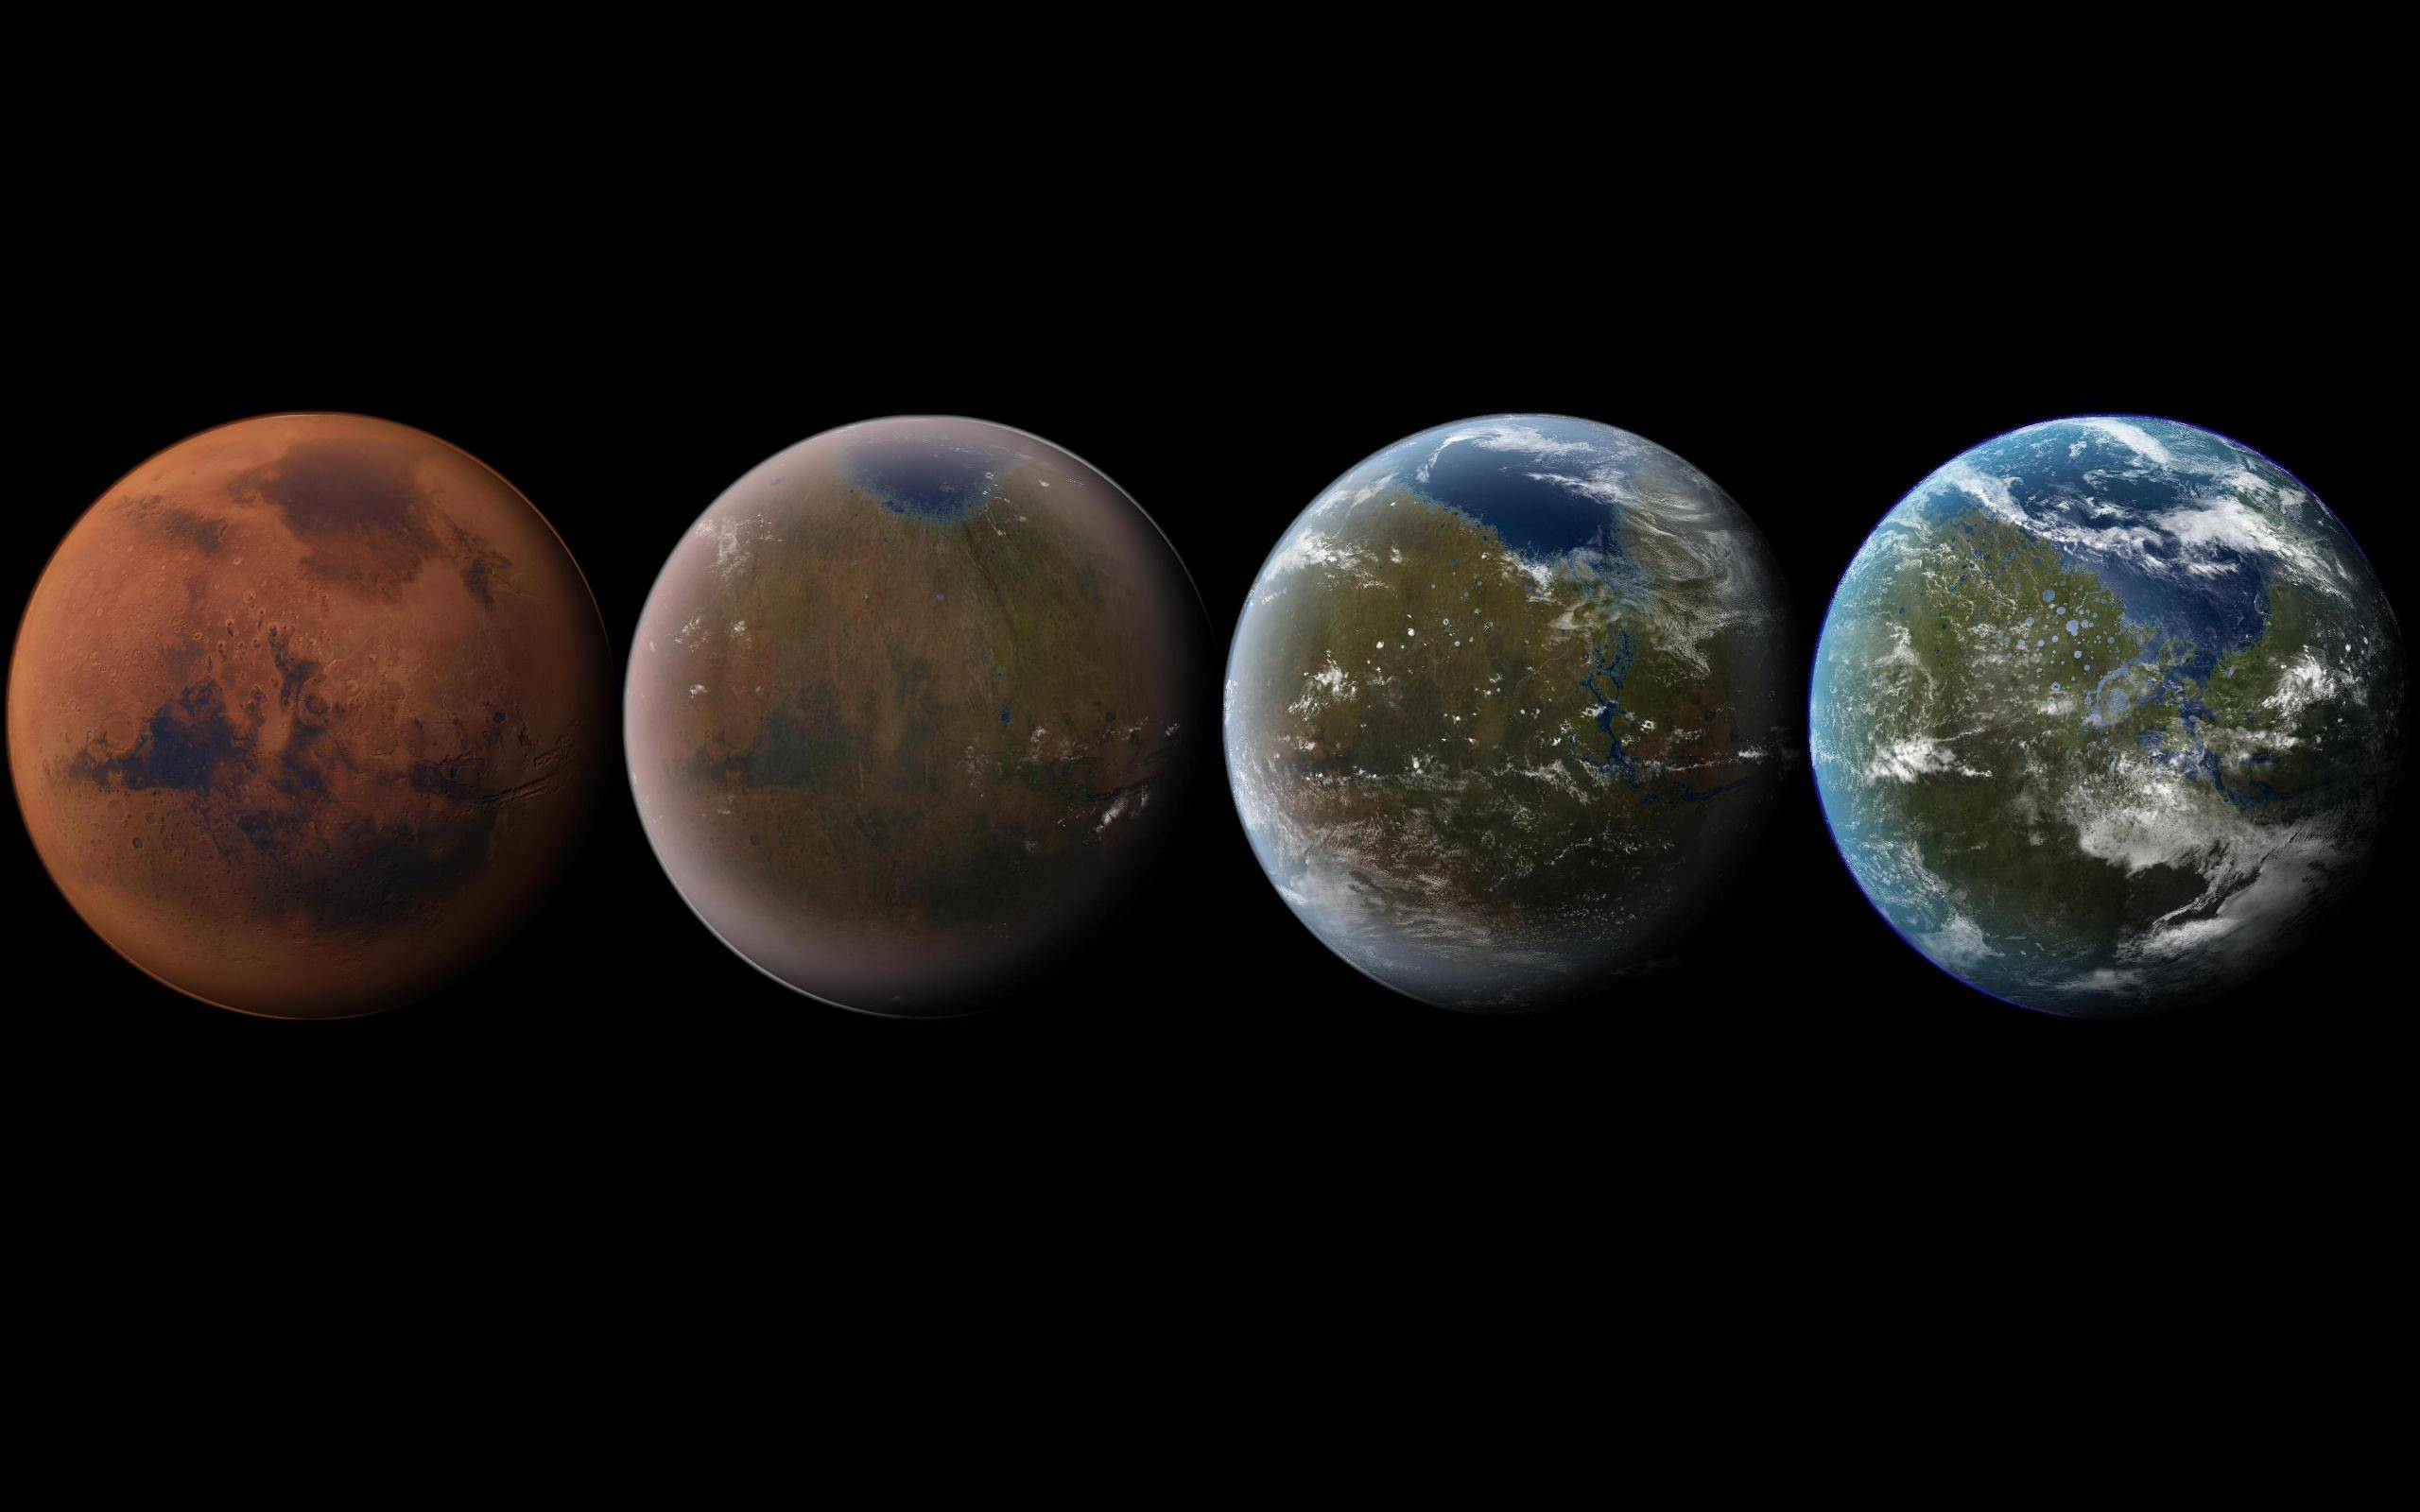 Artist's impression of the terraforming of Mars, from its current state to a livable world. Credit: Daein Ballard